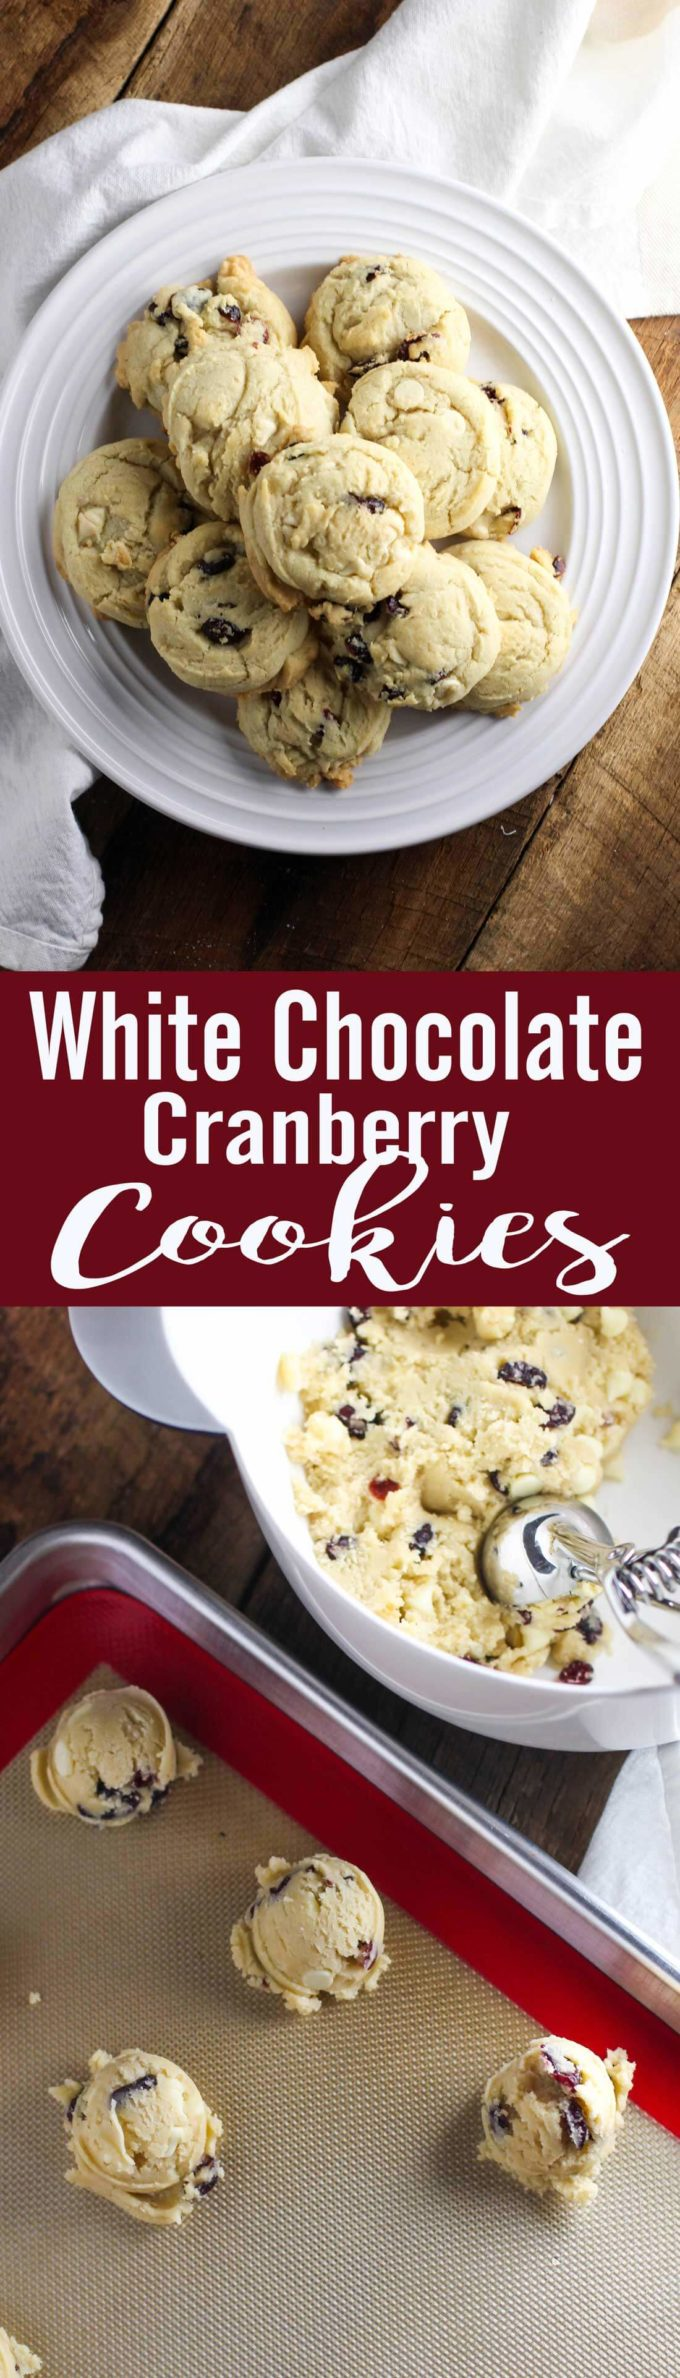 White Chocolate Cranberry Cookies are ideal for holiday baking. Soft, delicious, and so much flavor!